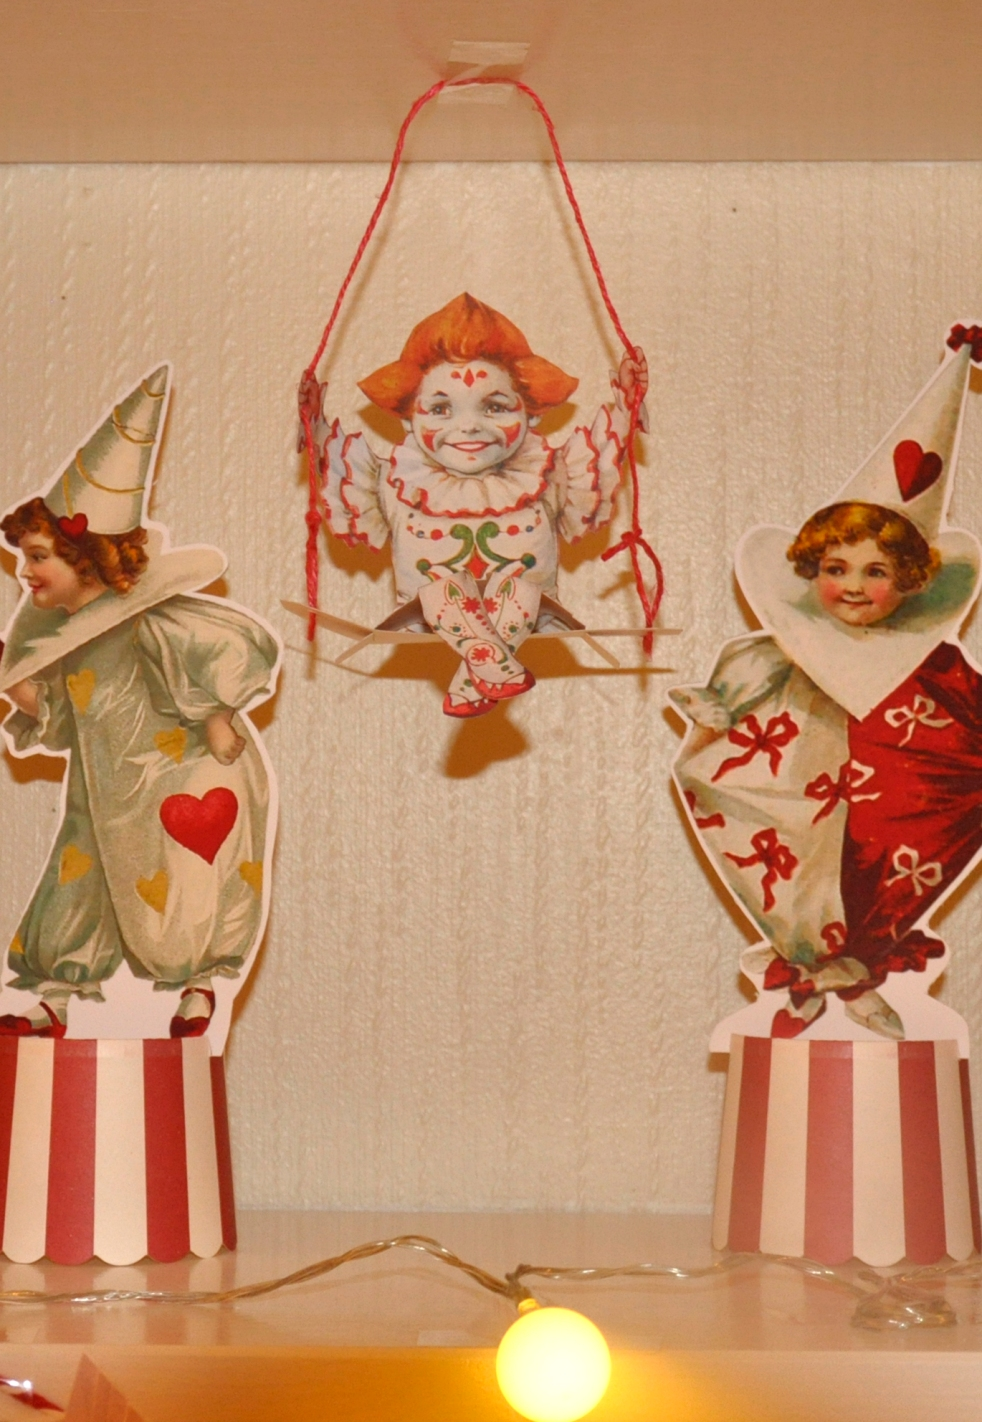 Wings of Whimsy: Swinging Pierrette - free printable #vintage #valentine #freebie